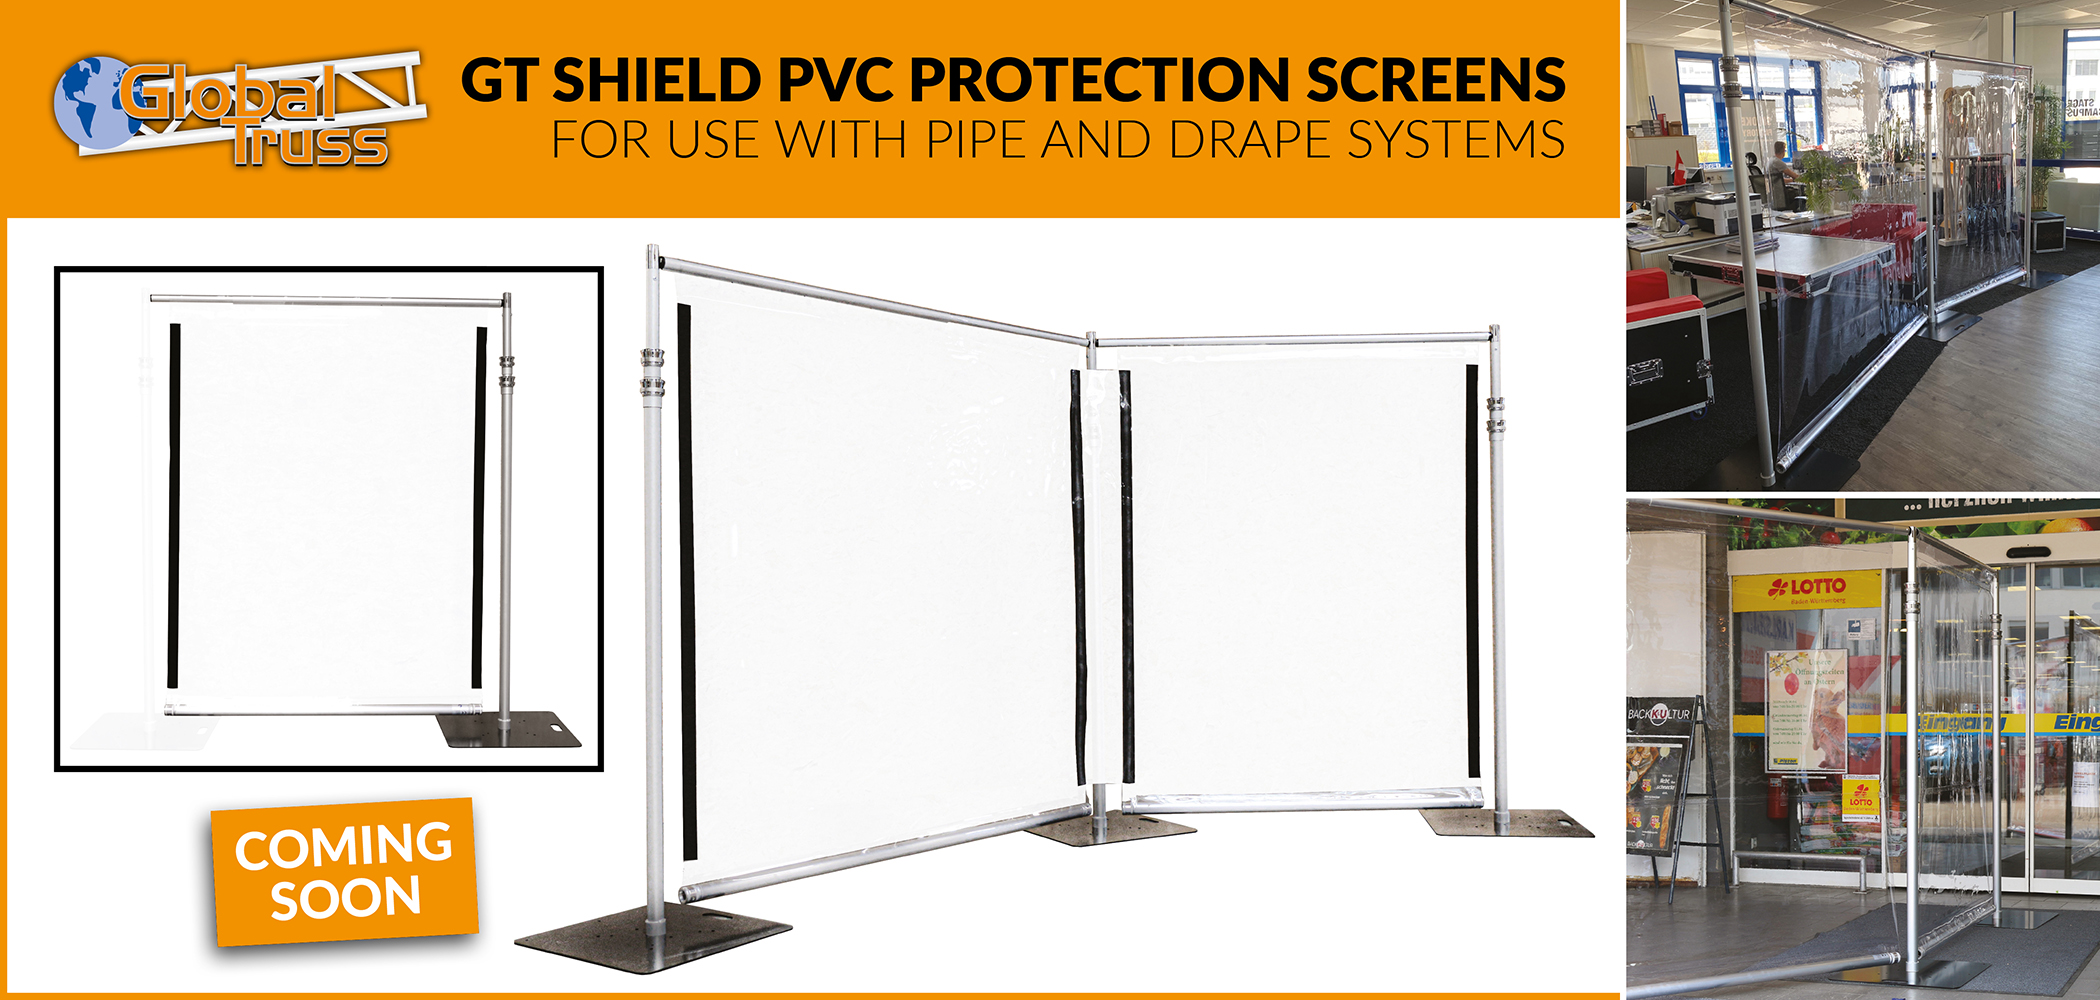 GT Shield PVC Protection Screens